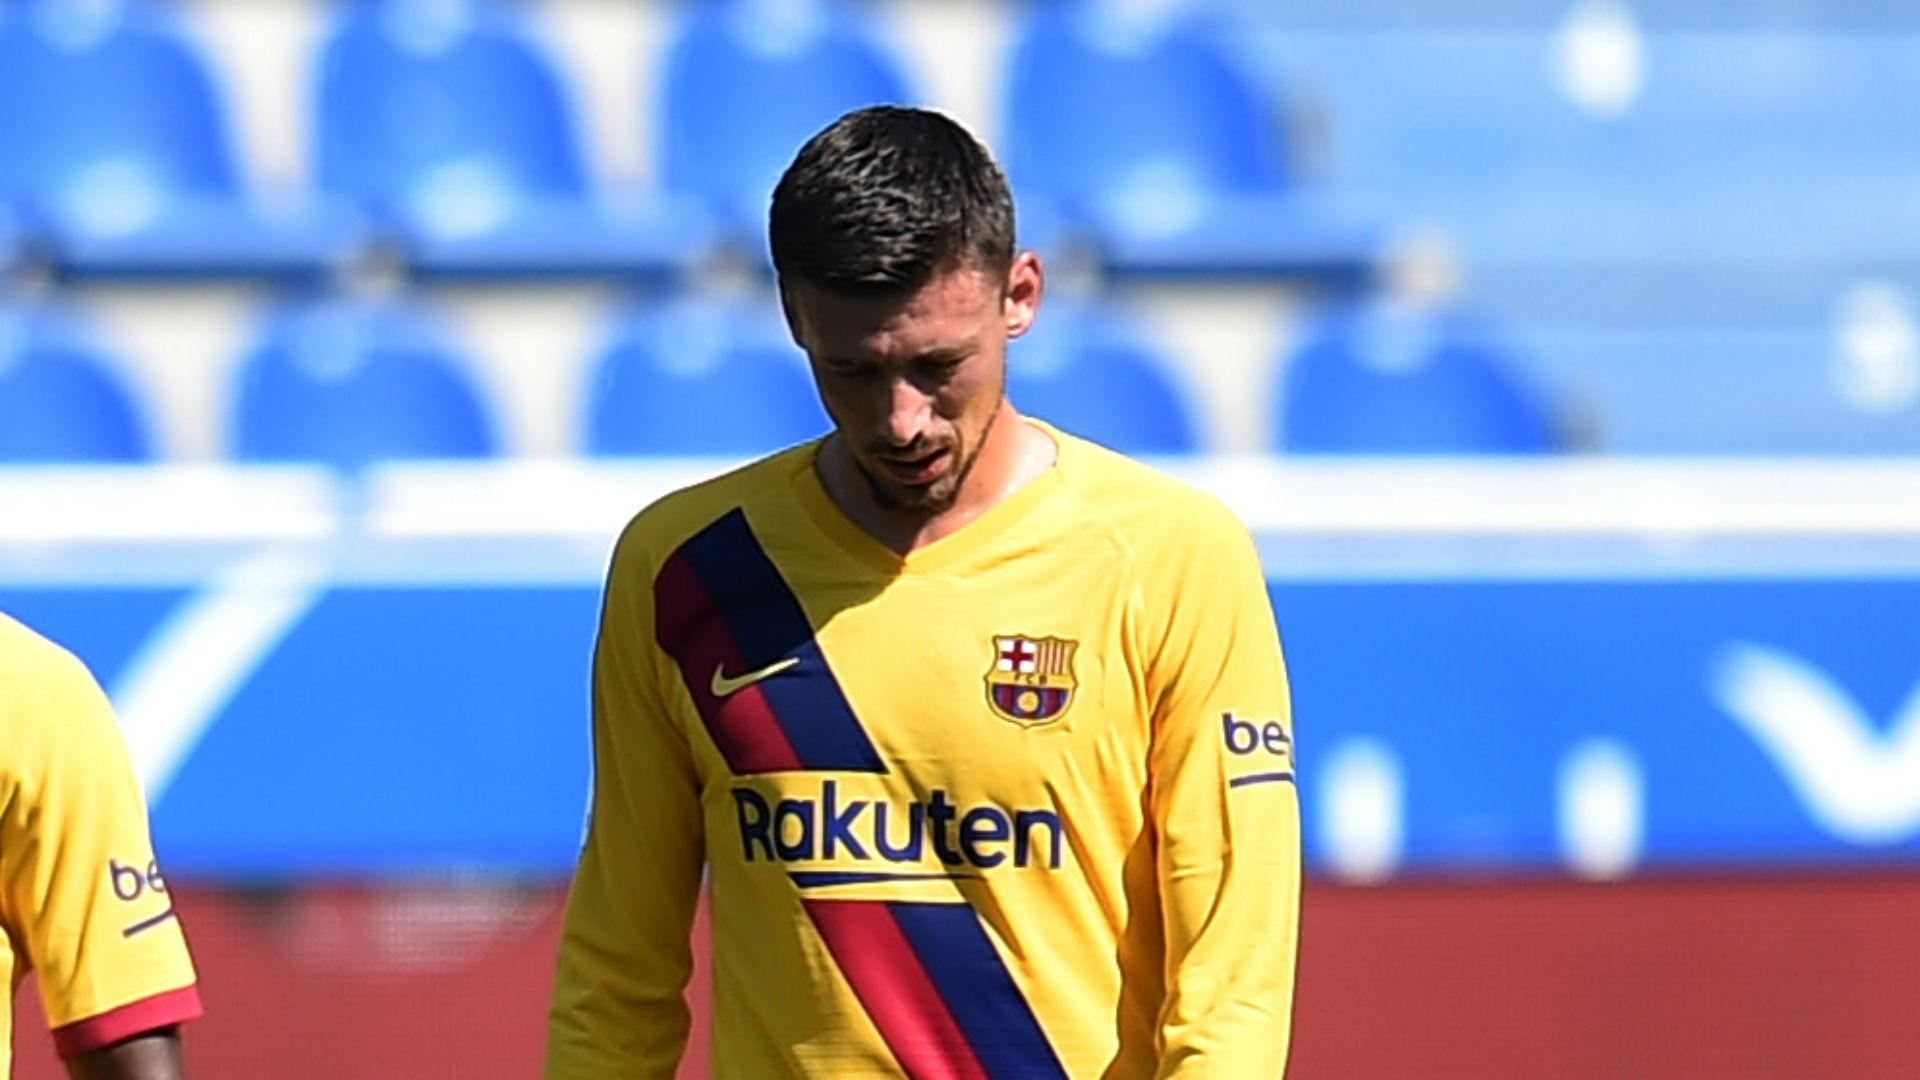 Barcelona's Lenglet to have treatment on groin injury